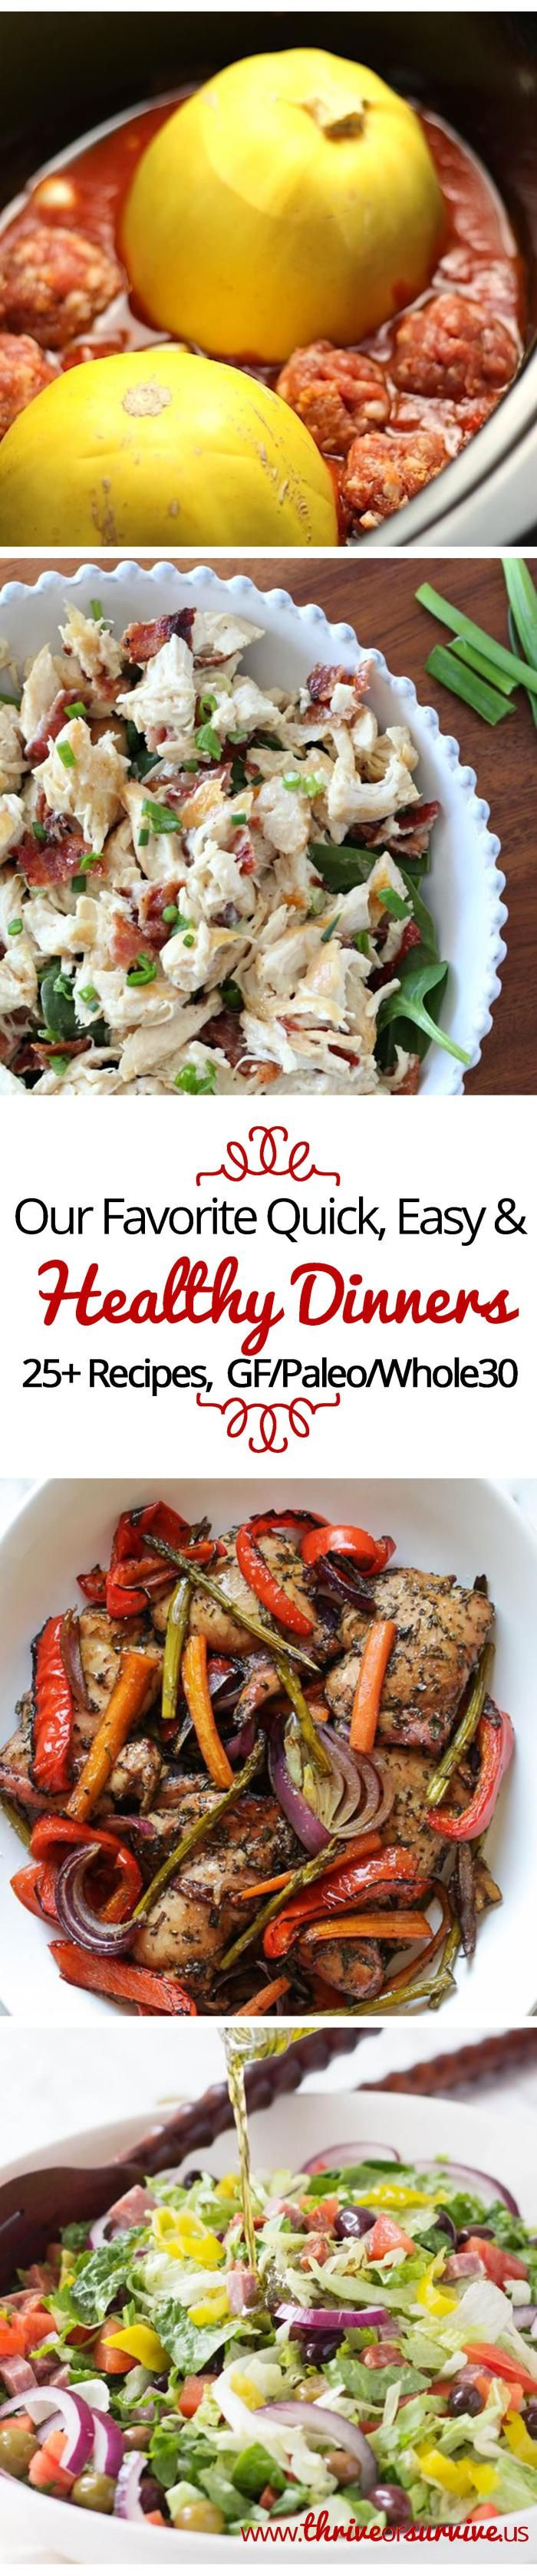 Our 25+ Favorite Quick, Easy Healthy Dinners - Gluten-free, Paleo & Whole30 compliant meals! @ www.thriveorsurvive.us